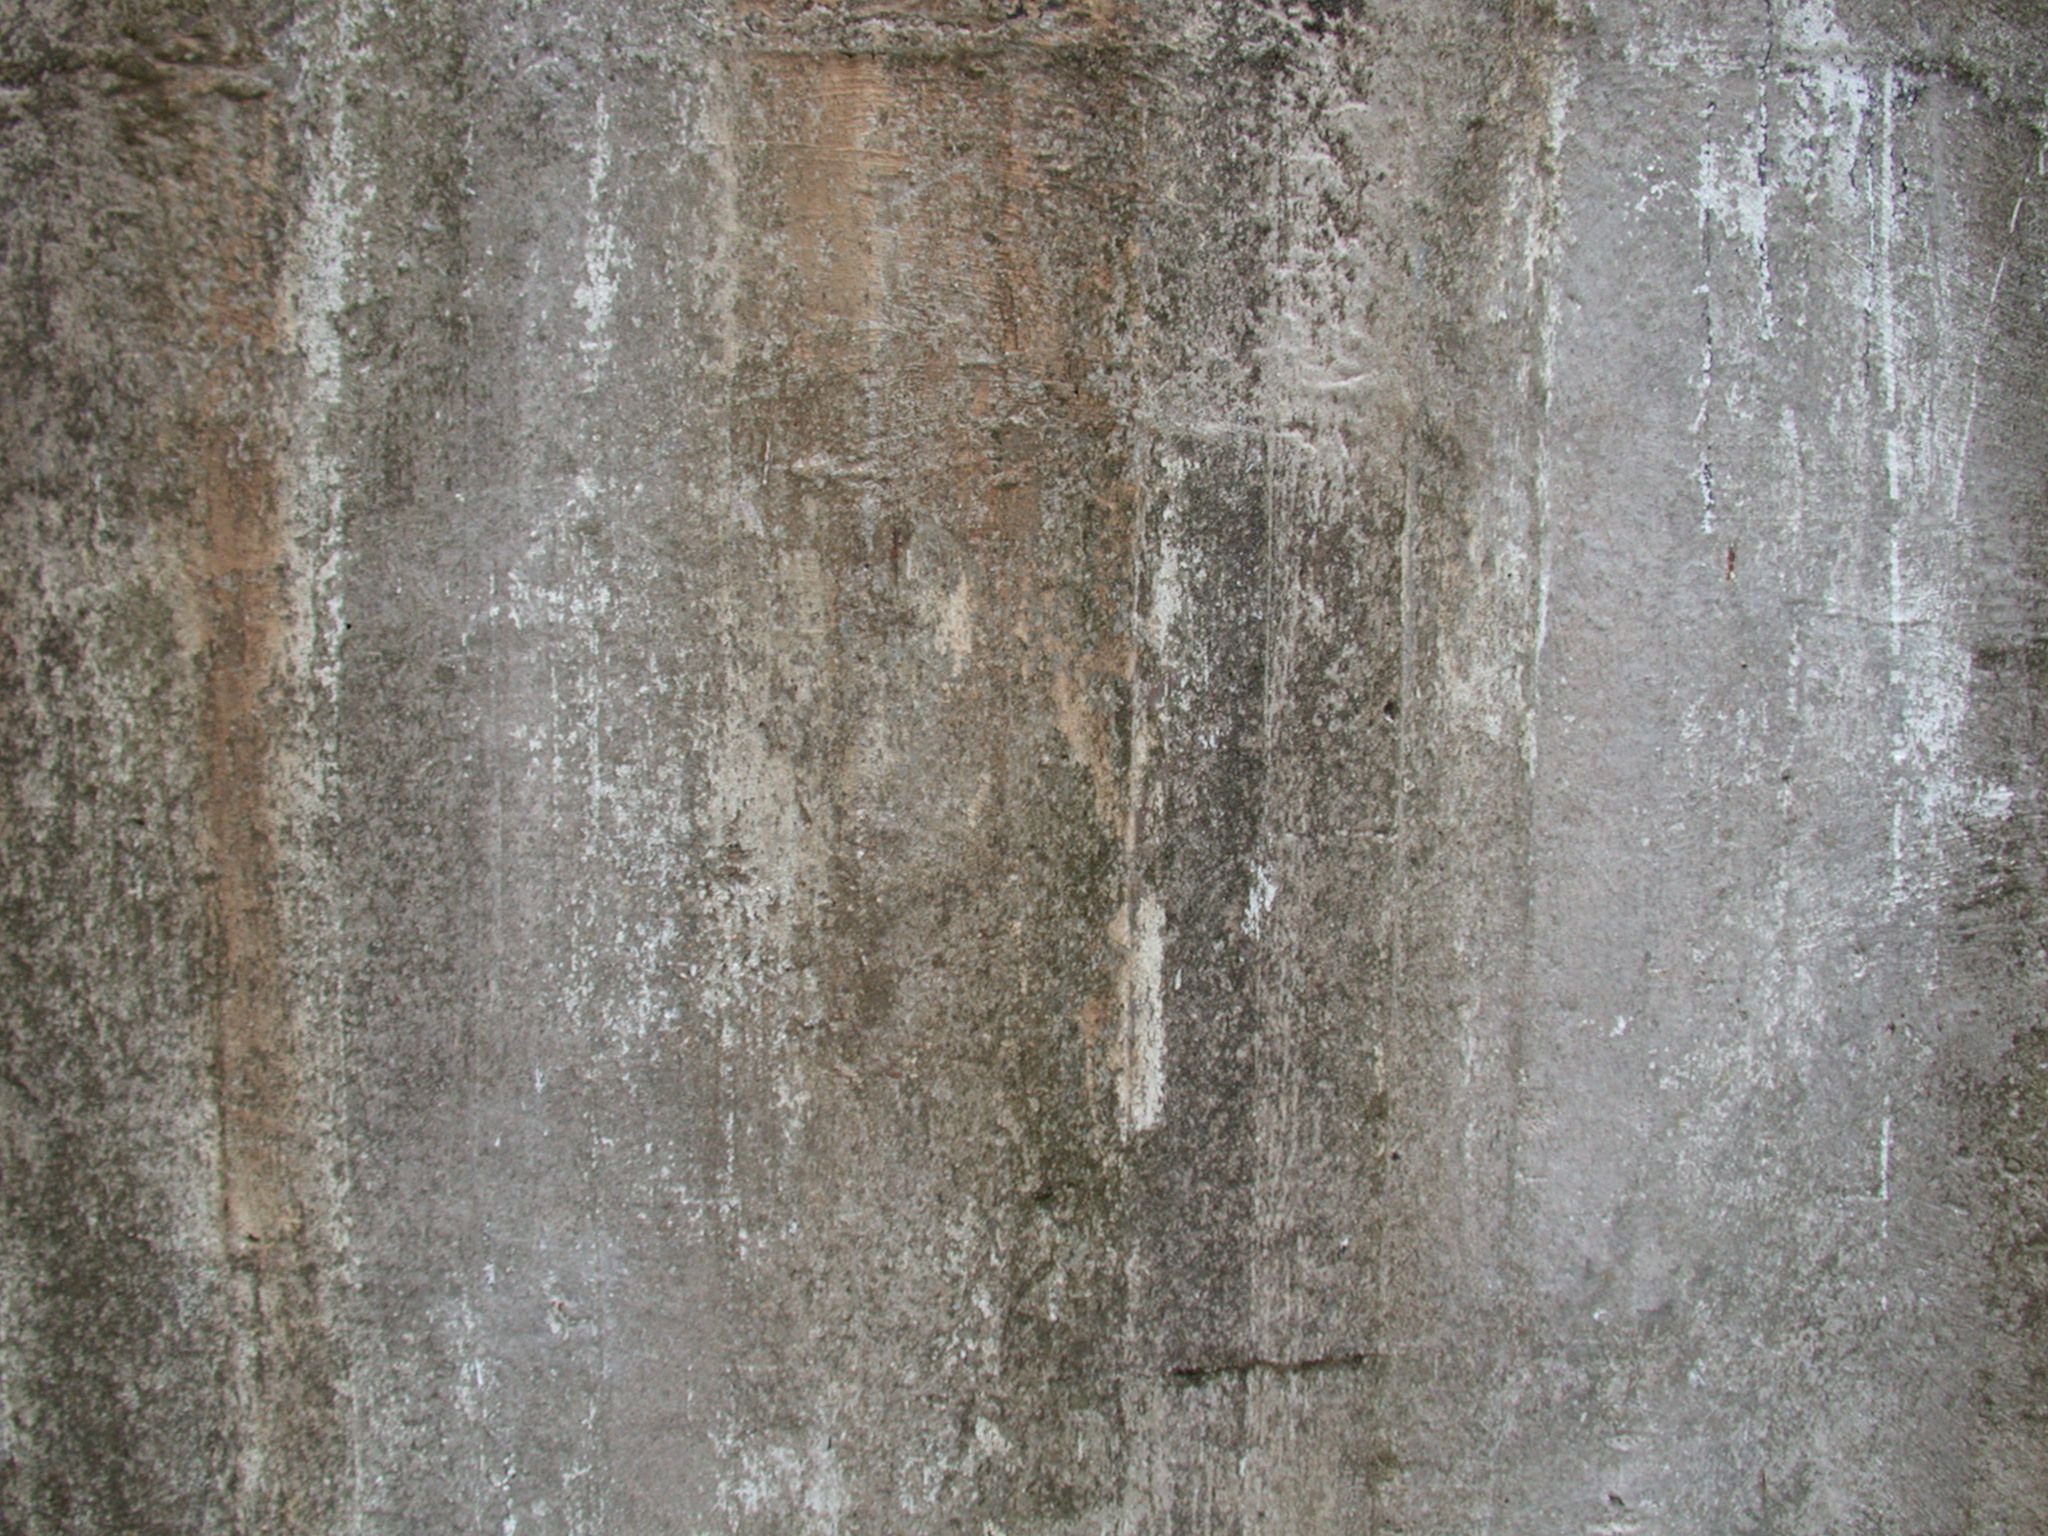 Texturing Concrete Walls Pin By Rotten Pictures On Rotten Walls Pinterest Wall